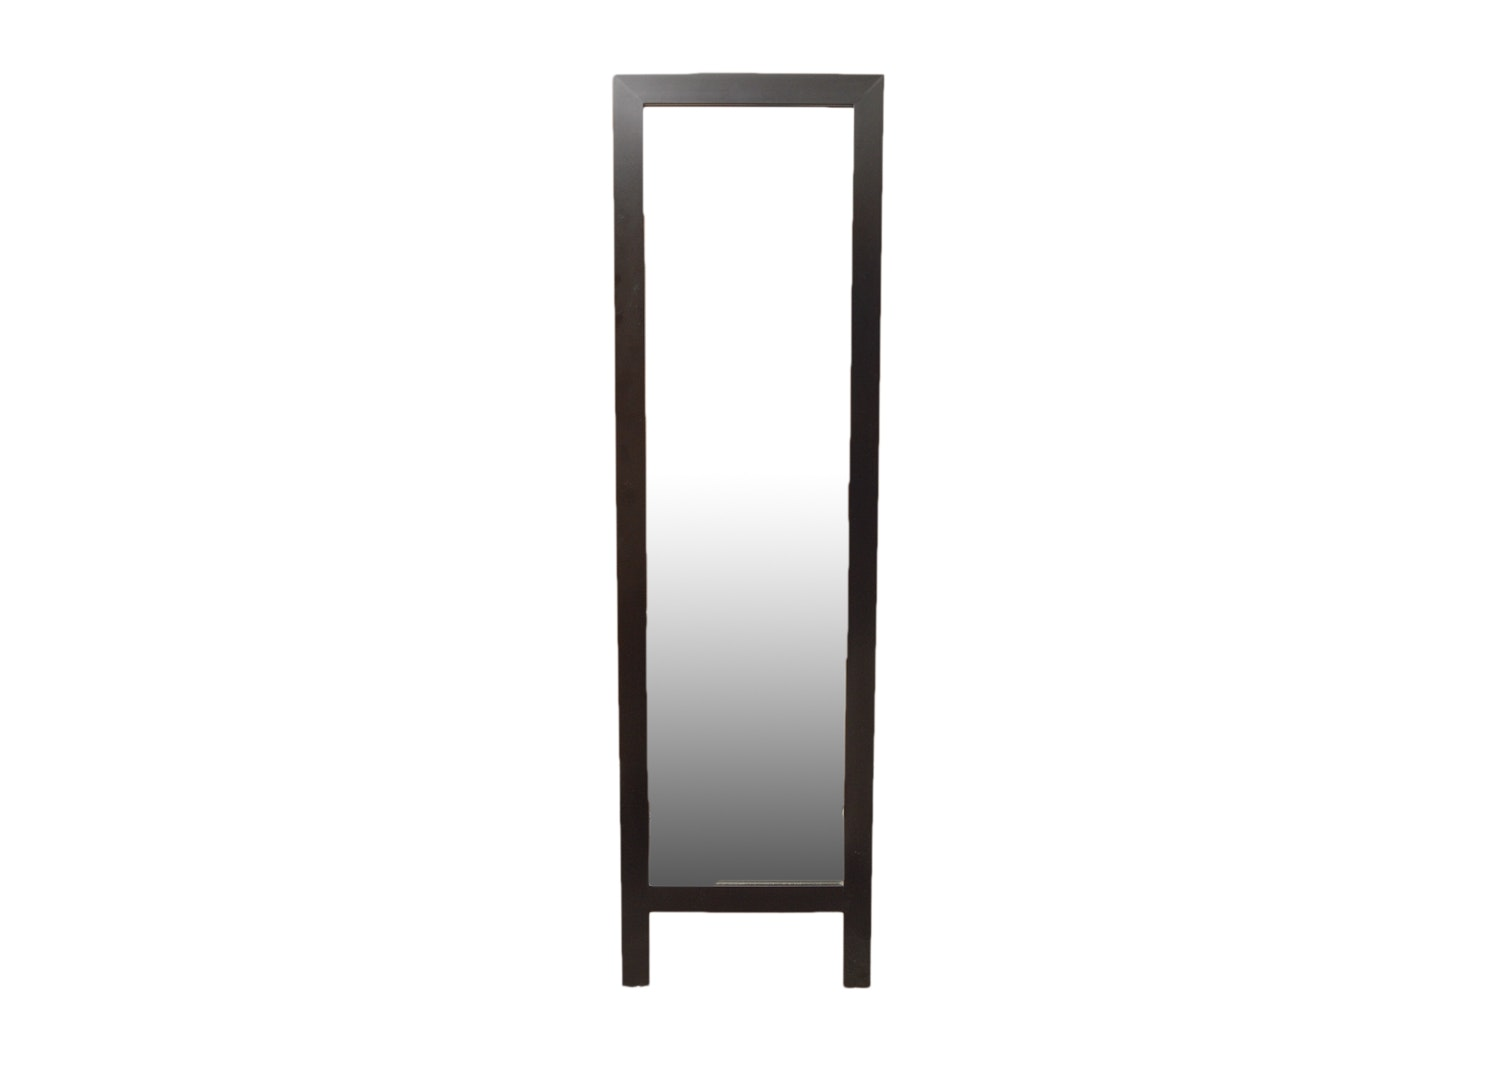 Easel Back Espresso Finished Full Length Standing Mirror